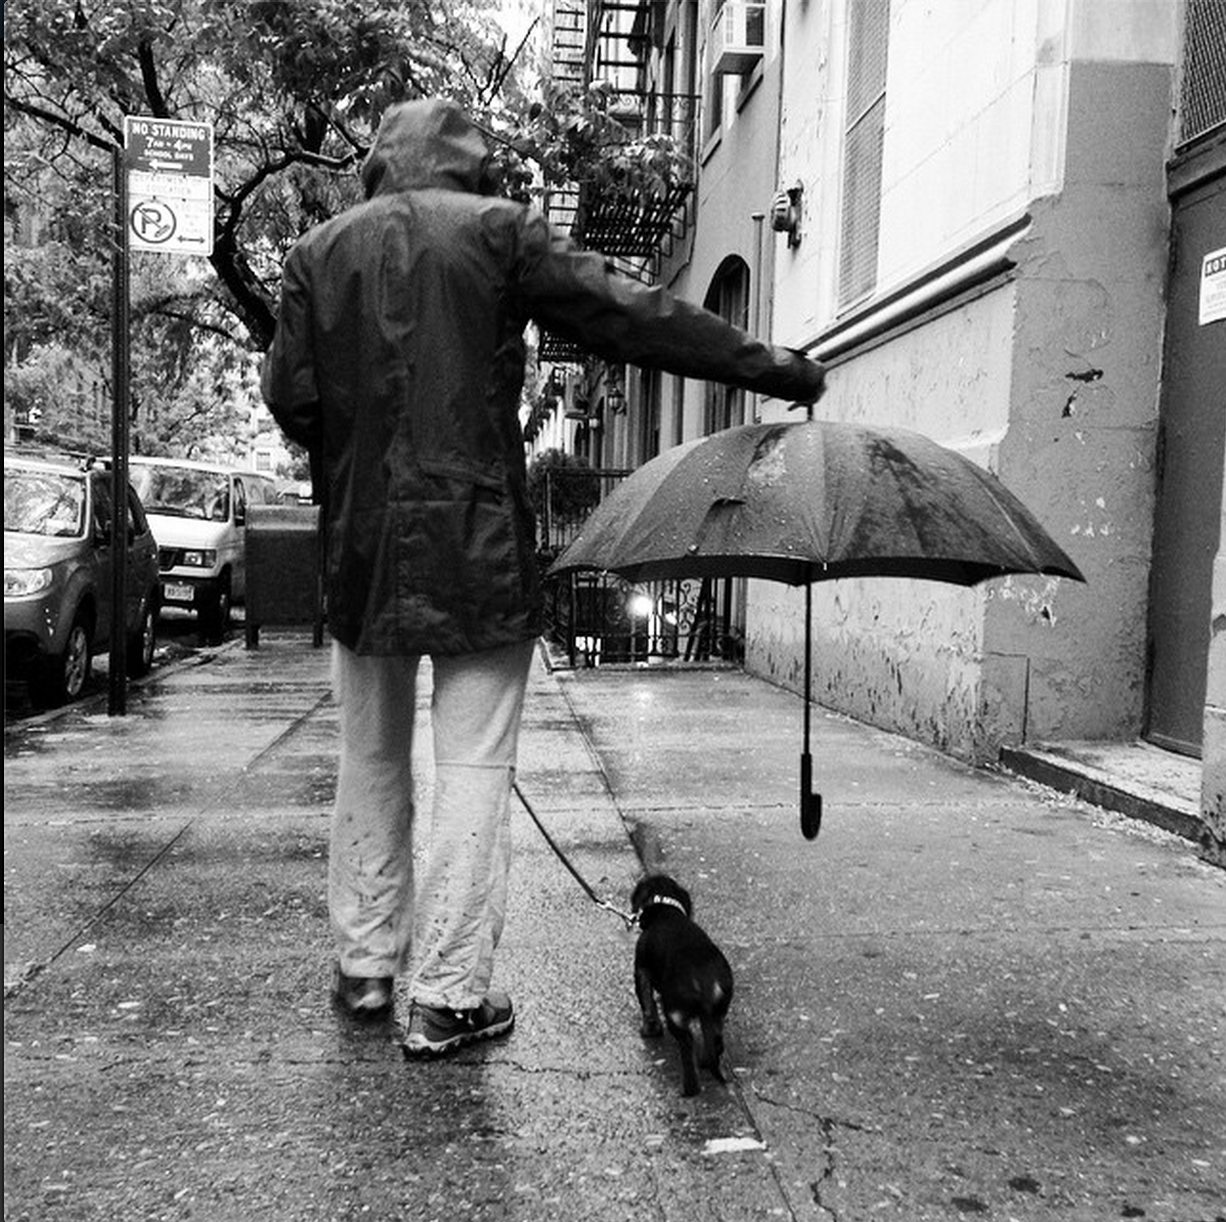 cuteanimalsawwww:  Best umbrella ettiquette, spotted on the streets of NYC via /r/aww http://ift.tt/12Ct5qR